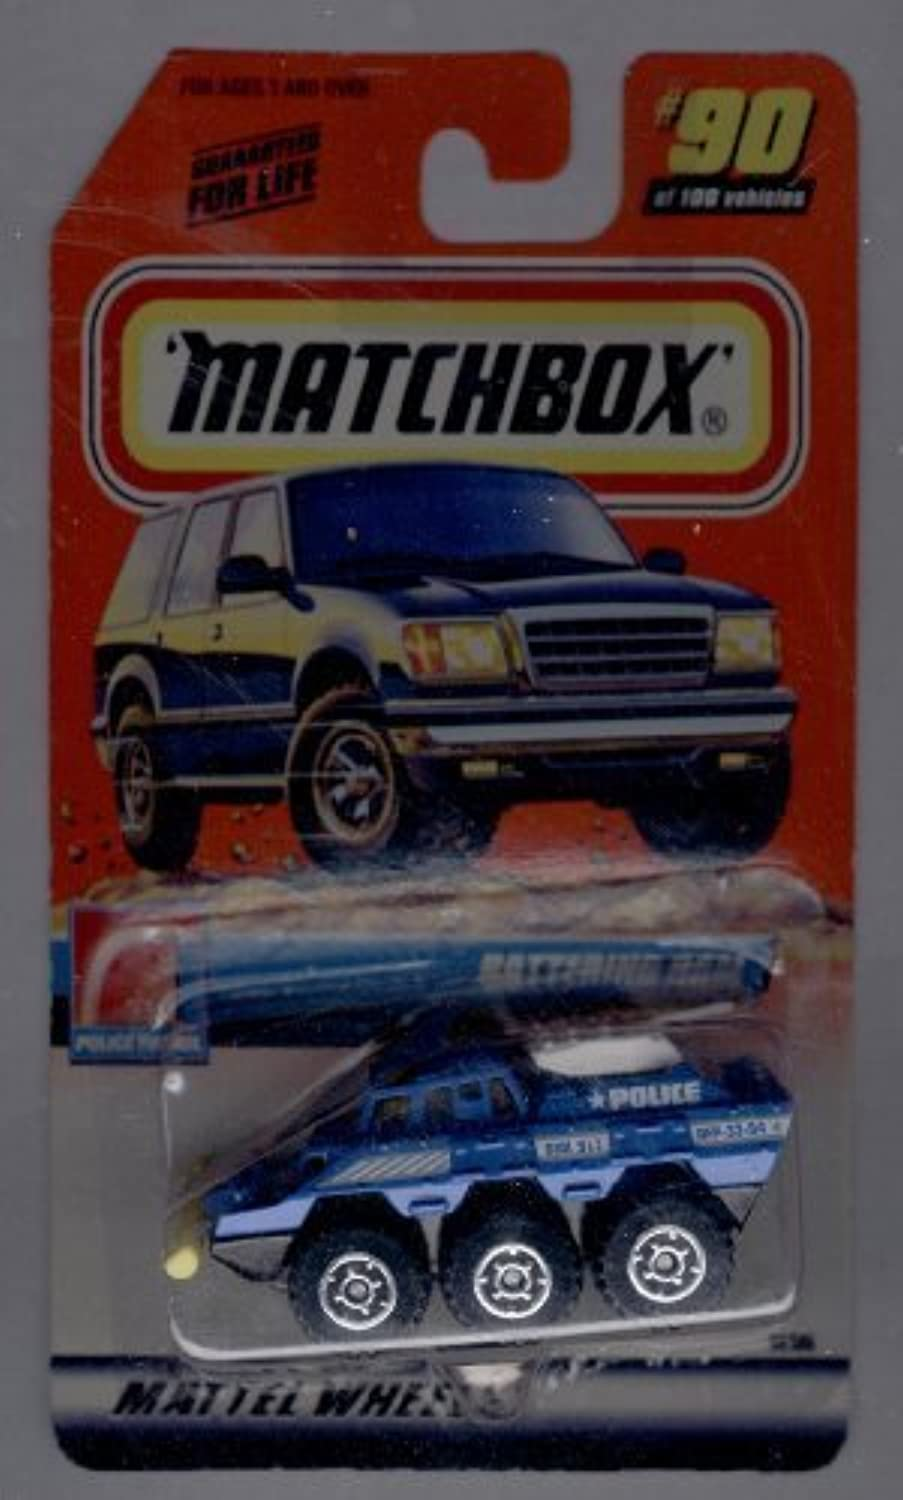 Matchbox 199990 of 100 Series 18 Police Patrol Battering RAM 1 64 Scale by Matchbox